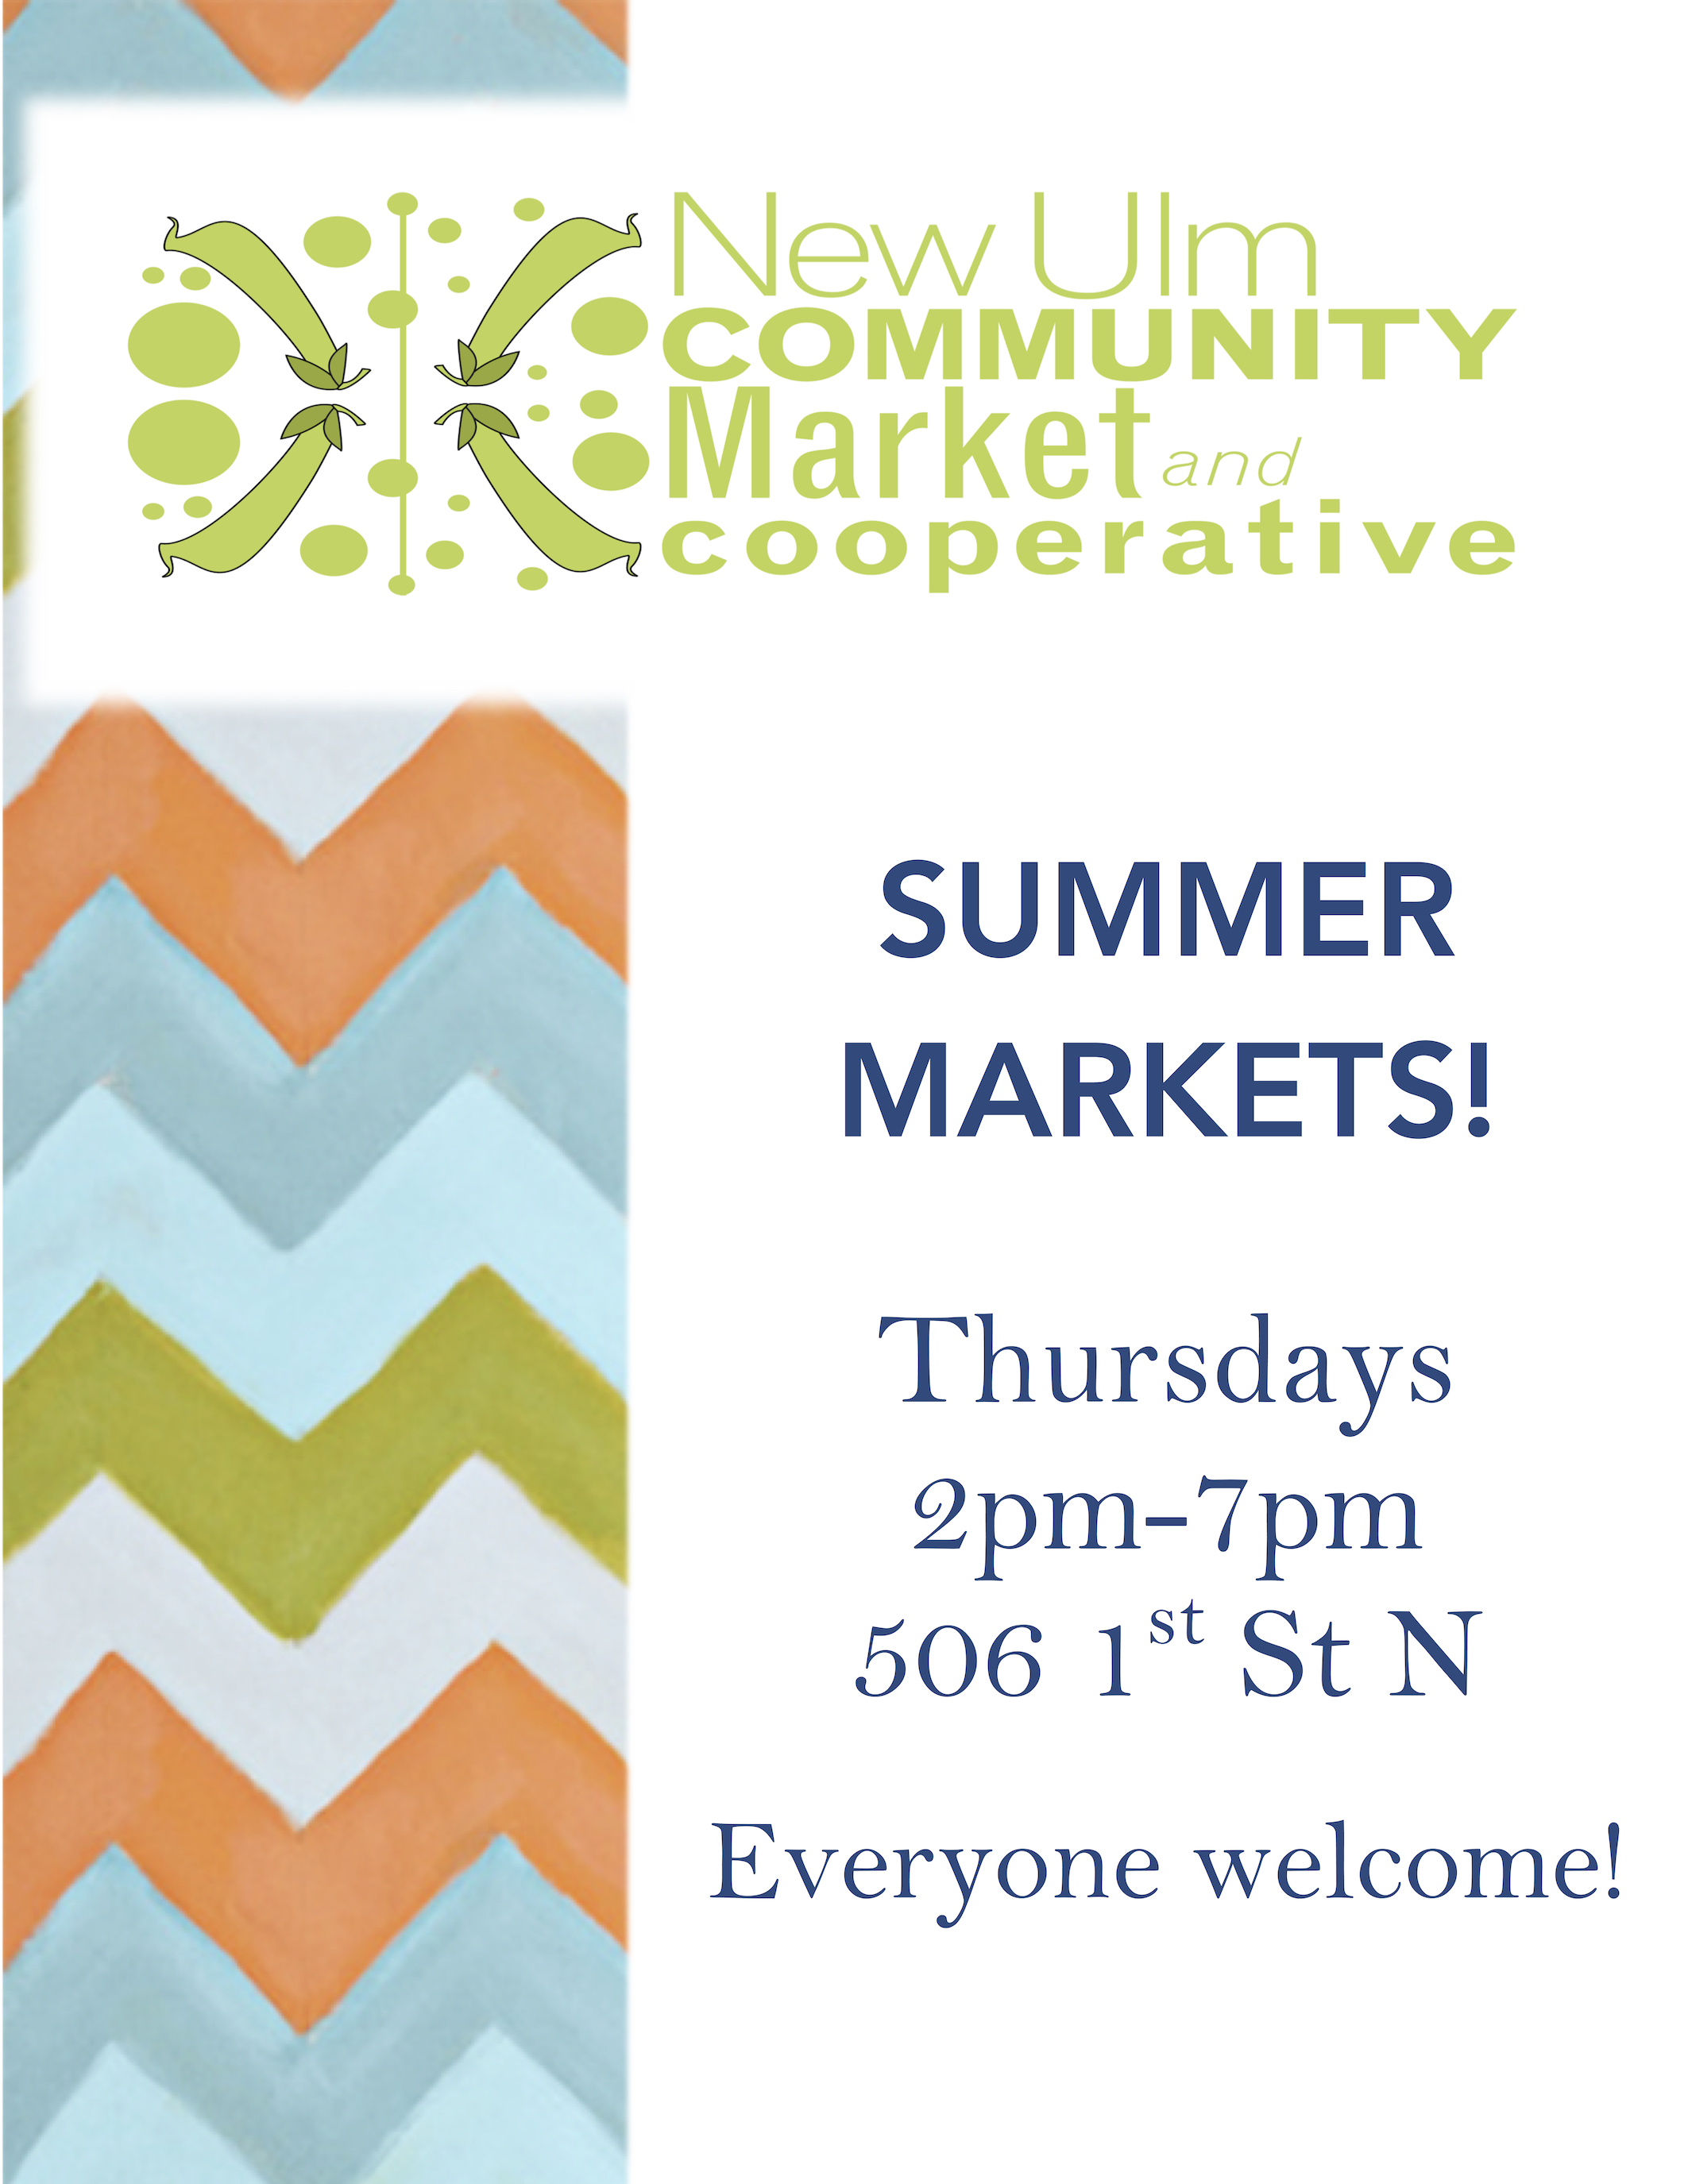 Summer Markets!